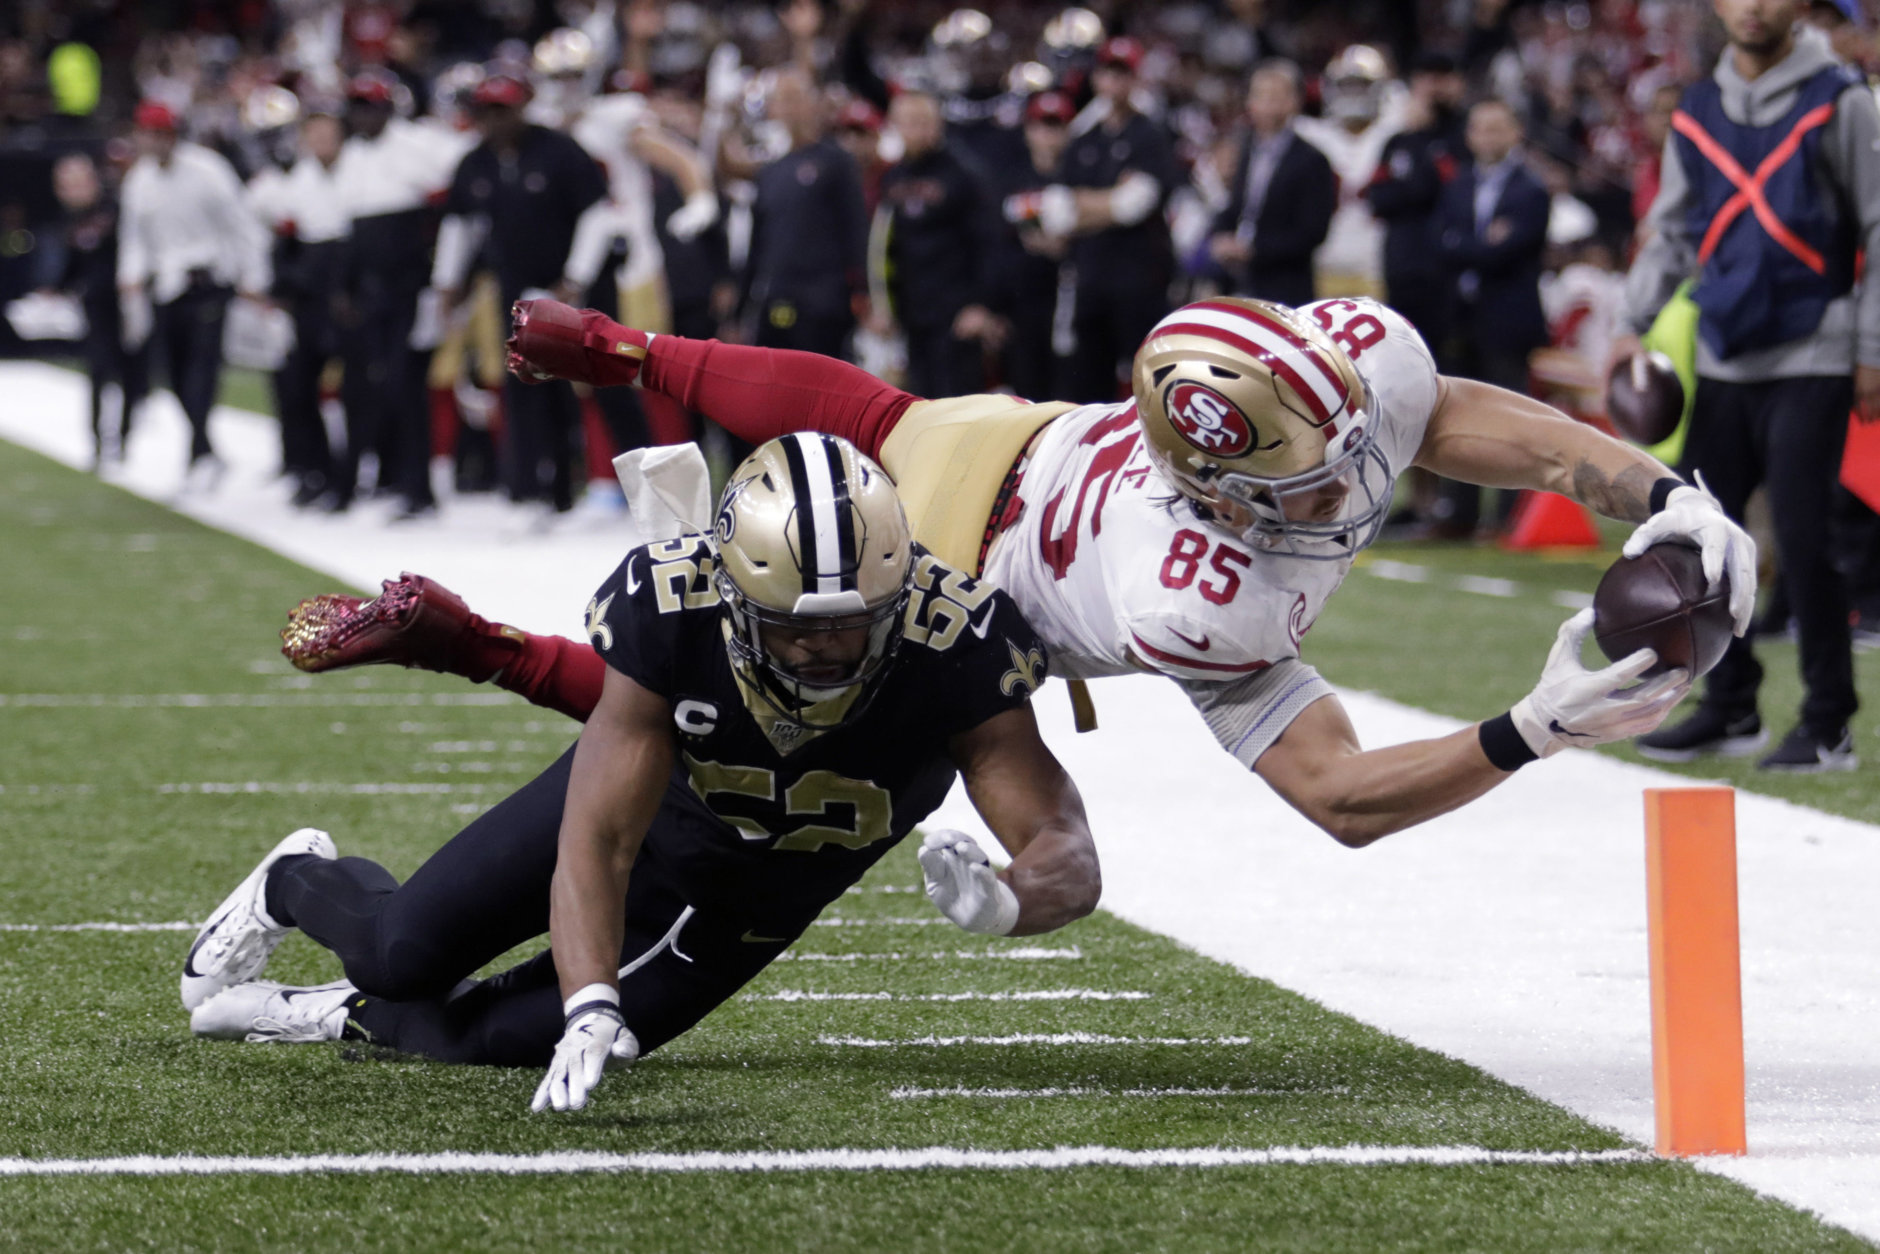 """<p><b><i>49ers 48</i></b><br /> <b><i>Saints 46</i></b></p> <p>For the second time, <a href=""""https://profootballtalk.nbcsports.com/2019/12/08/49ers-hope-another-full-week-on-the-road-pays-off/"""" target=""""_blank"""" rel=""""noopener"""">San Francisco&#8217;s extended road trip</a> helped them get a key win and give them the likely homefield advantage if we&#8217;re lucky enough to see a playoff rematch between these two teams. Please, great football gods, let us have a rematch between these two teams.</p>"""